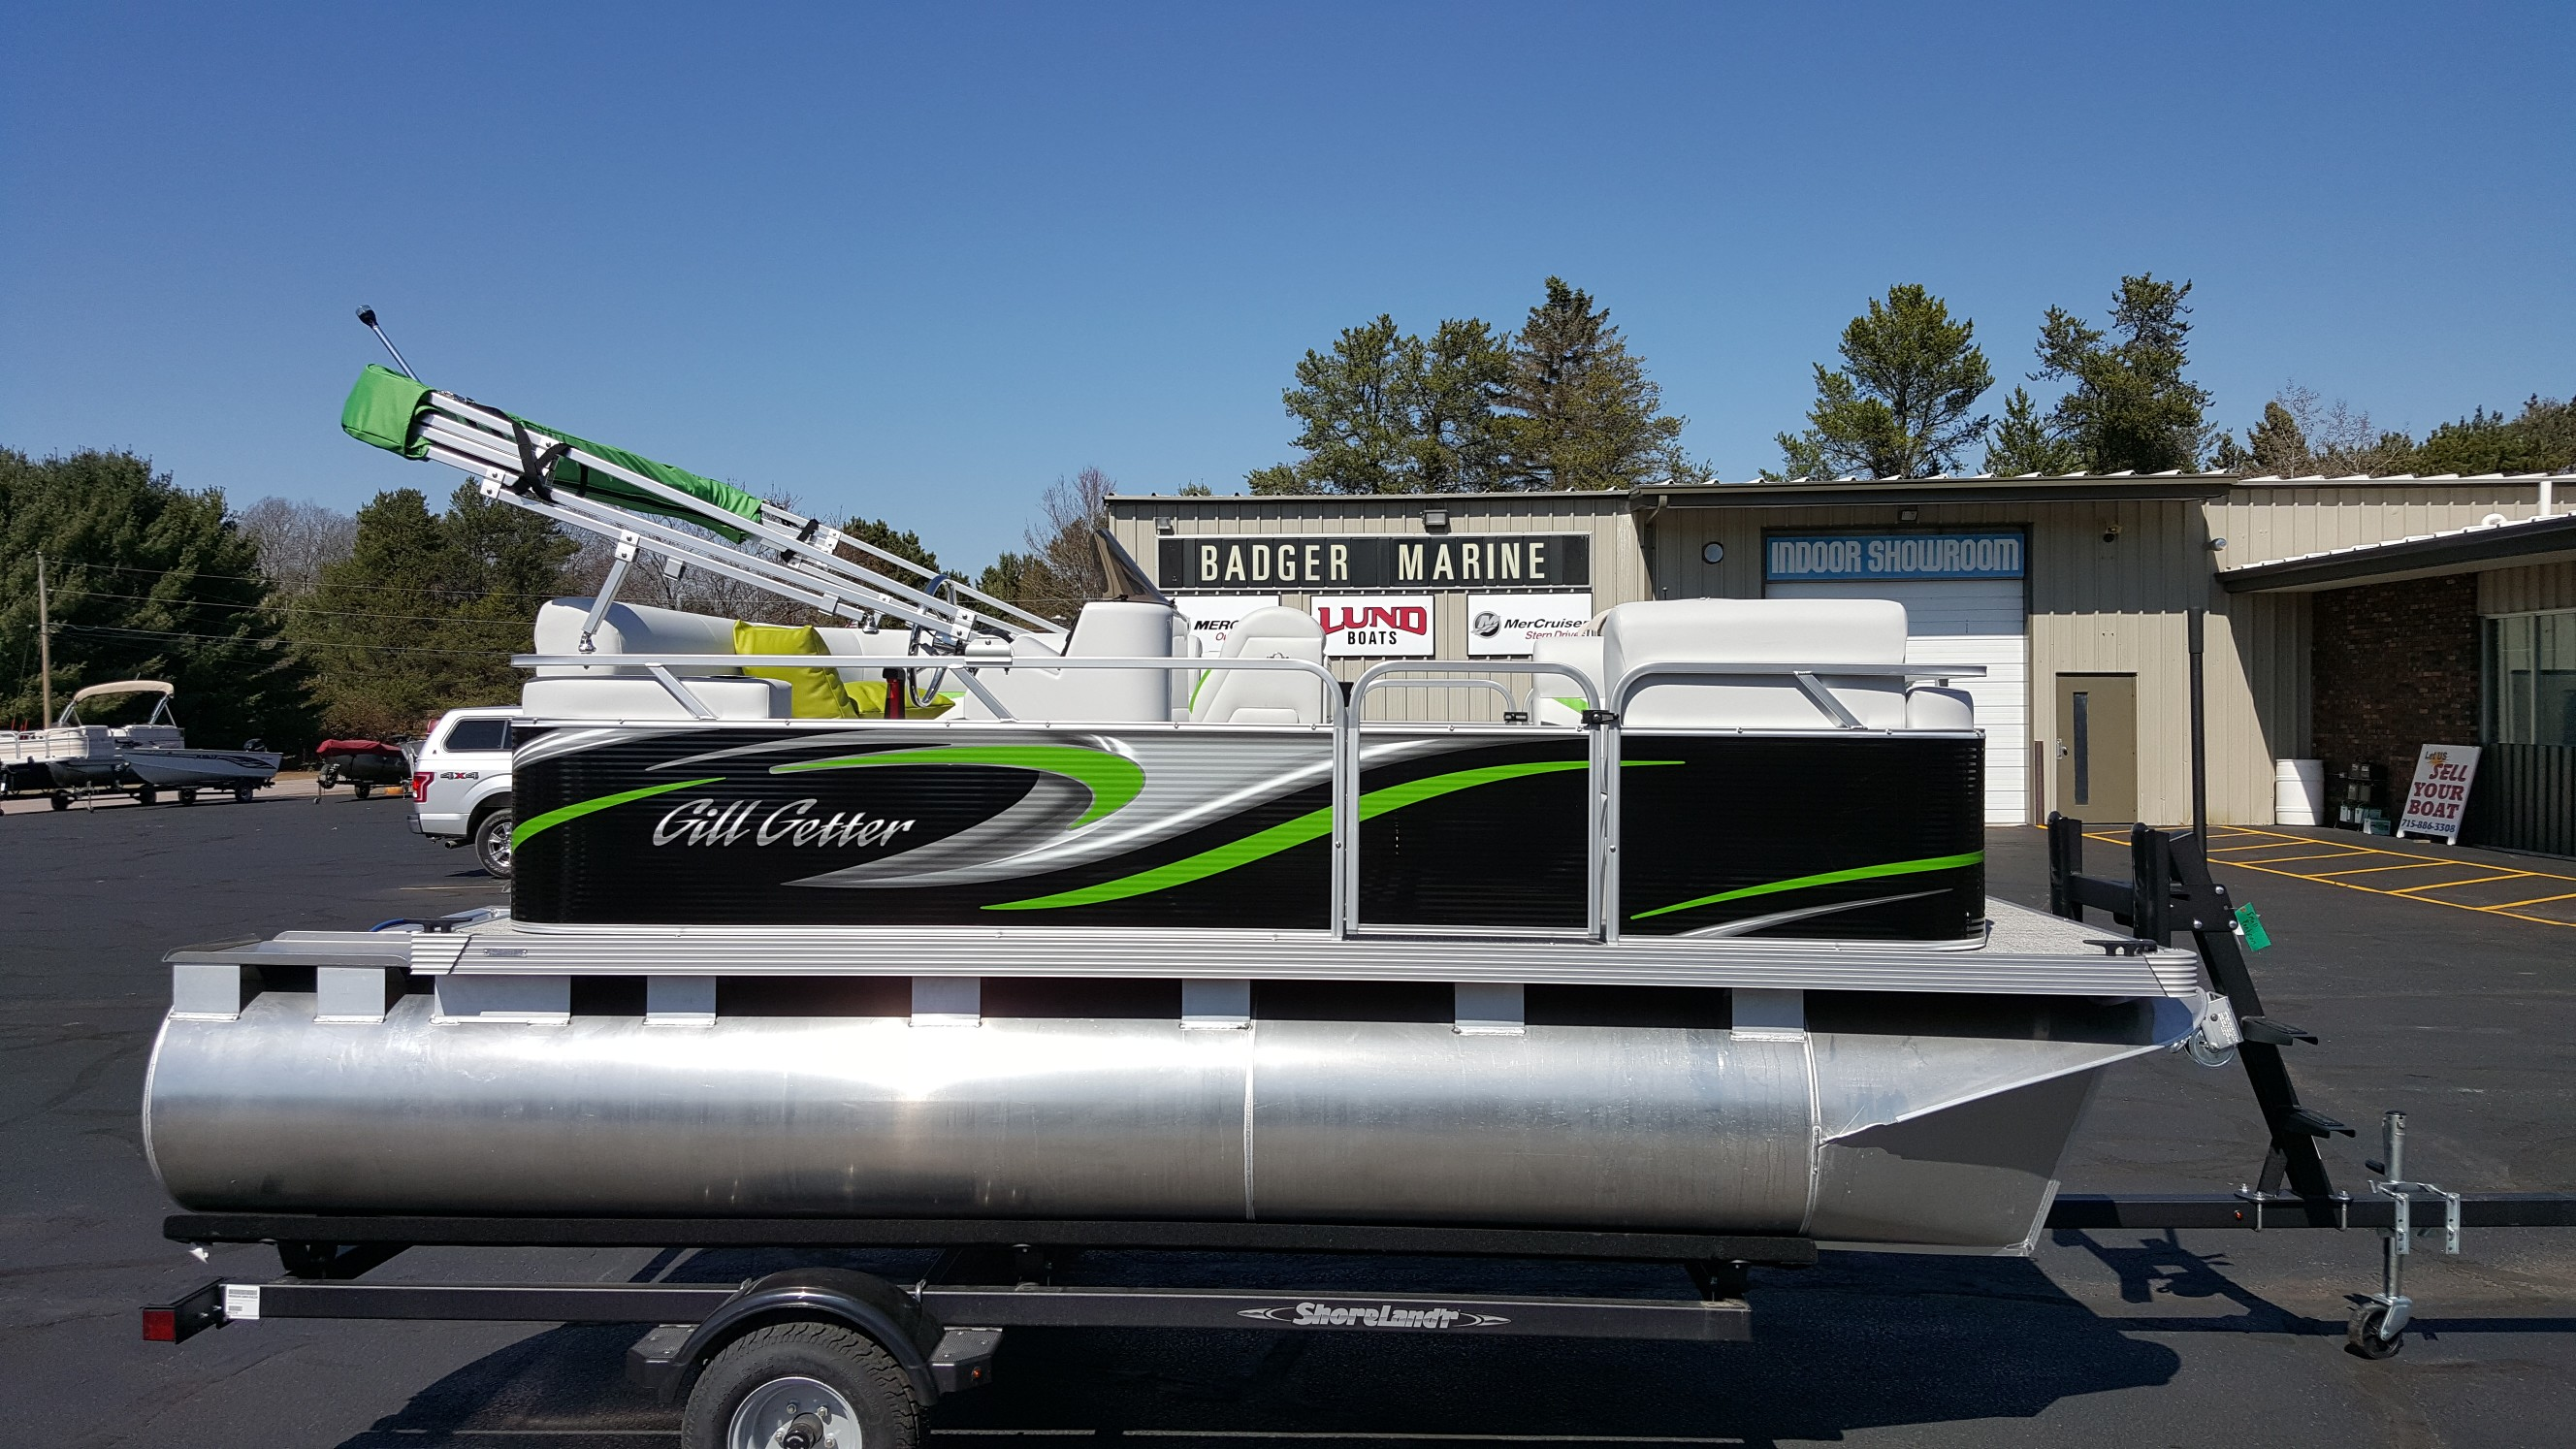 2021 Qwest Pontoons Gillgetter 7515 Cruise Deluxe